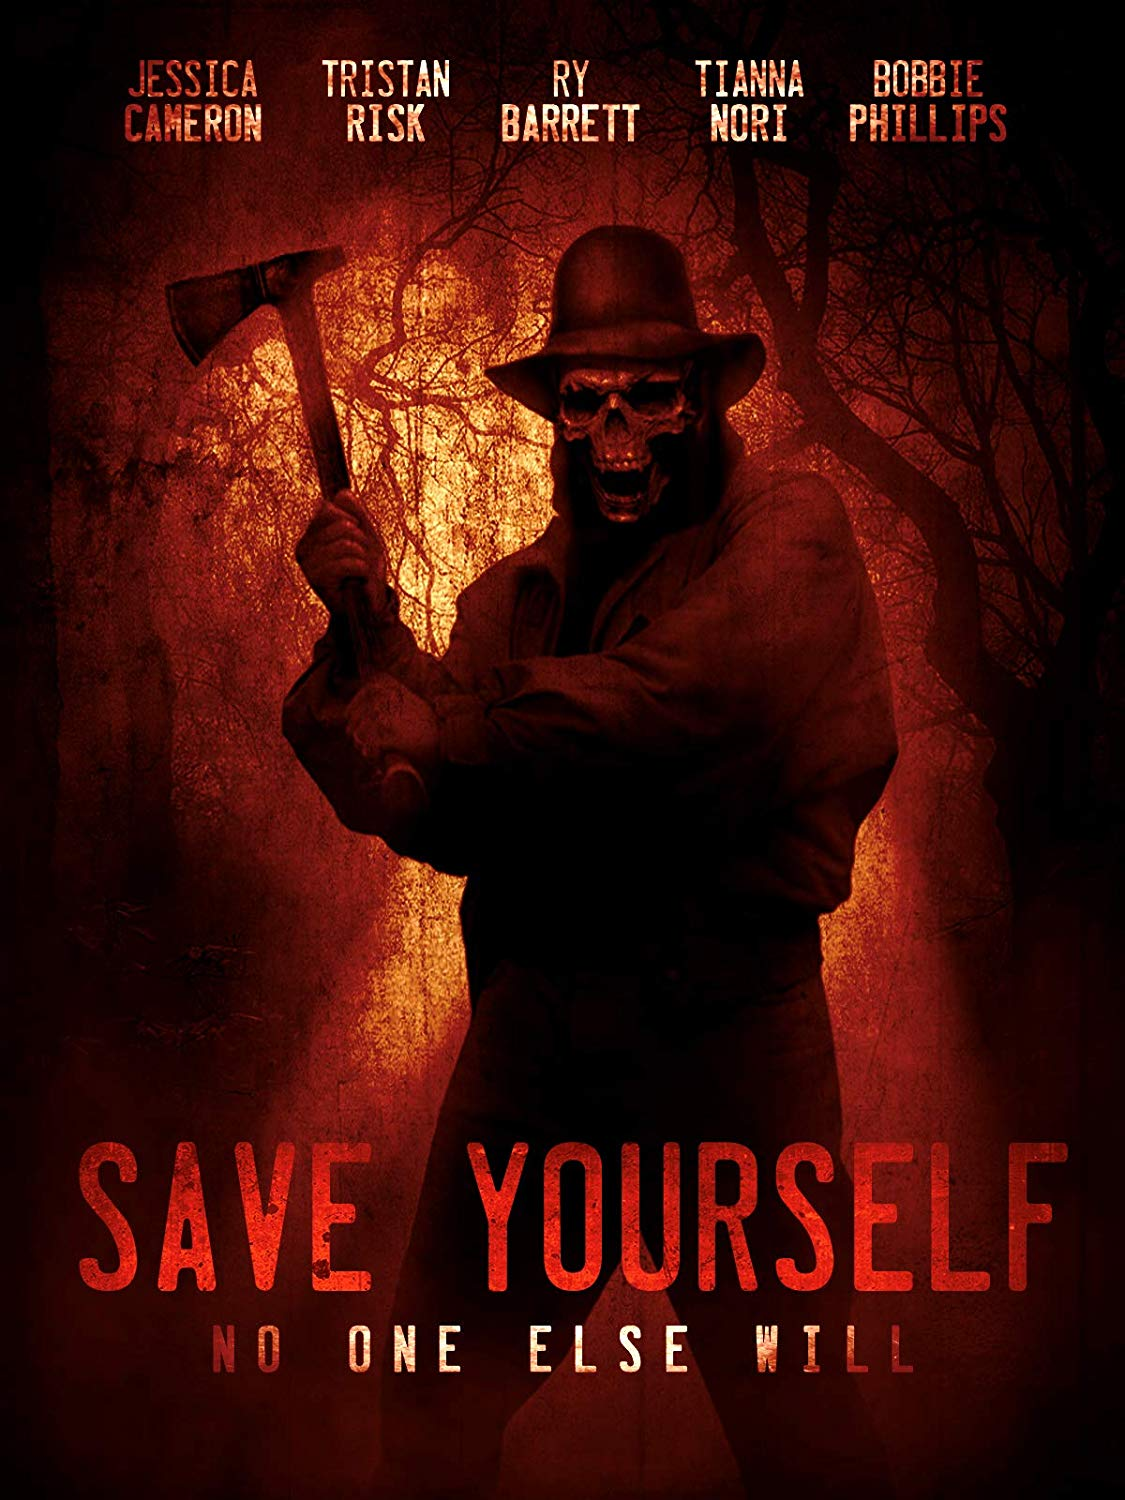 Save Yourself DVD - Daily Dead